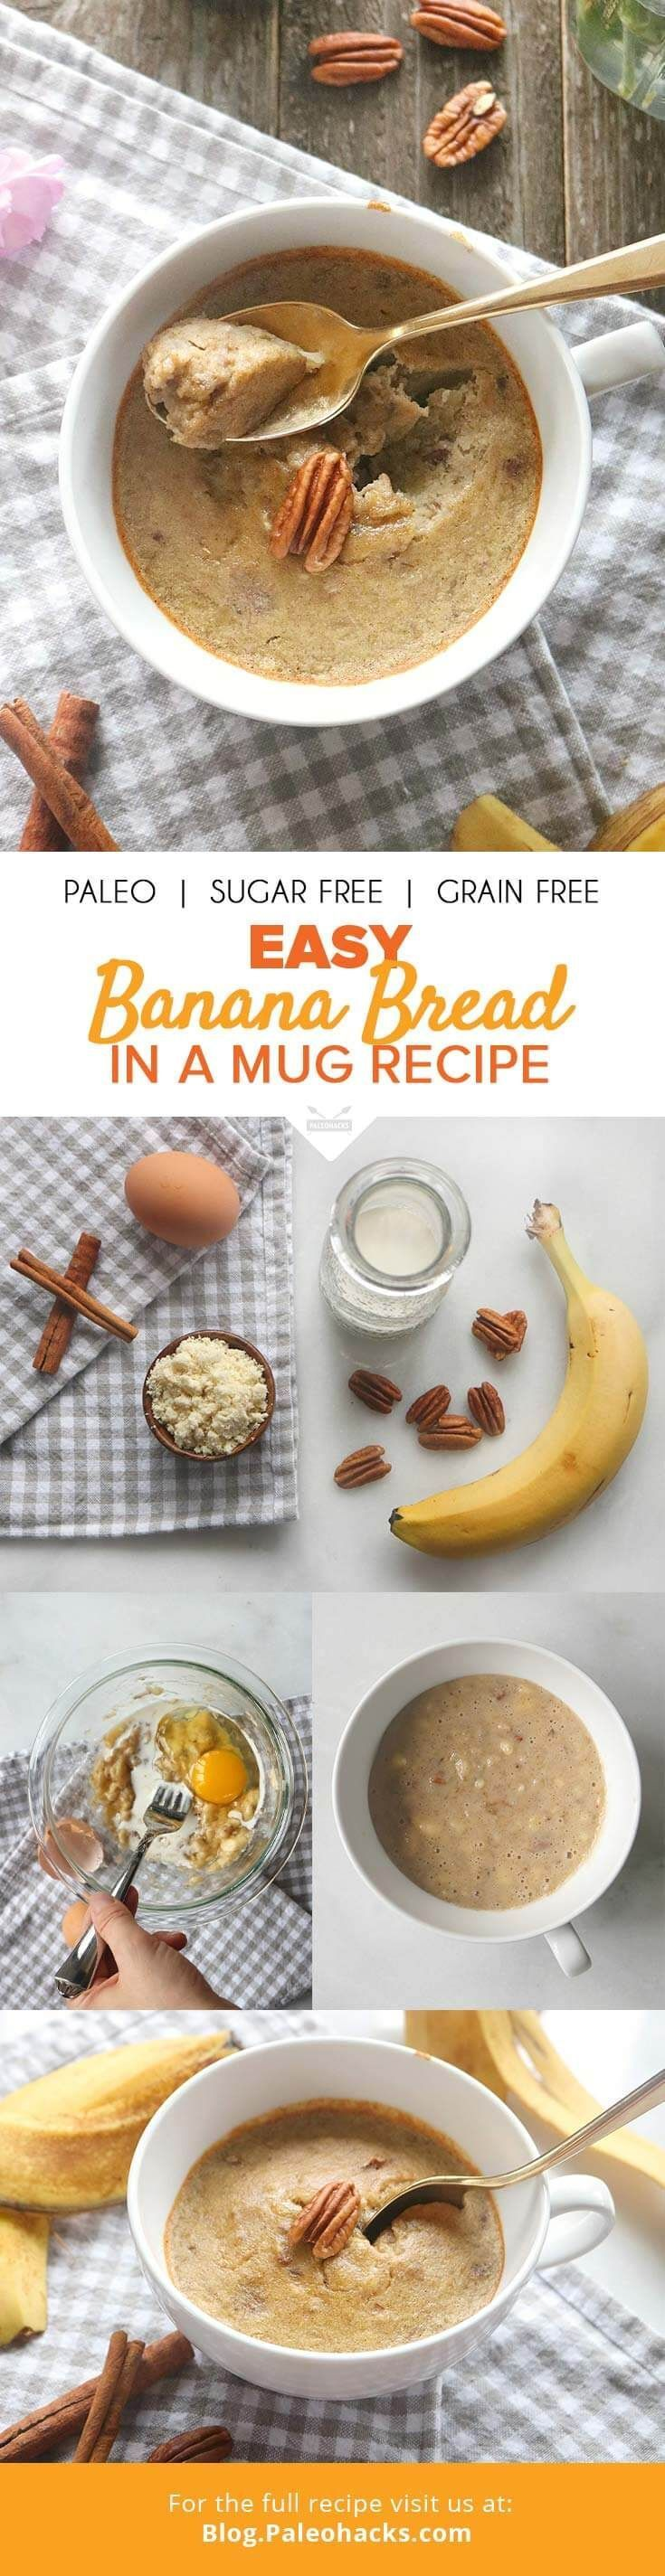 All the goodness of banana bread baked into a mug A cozy sweet treat with